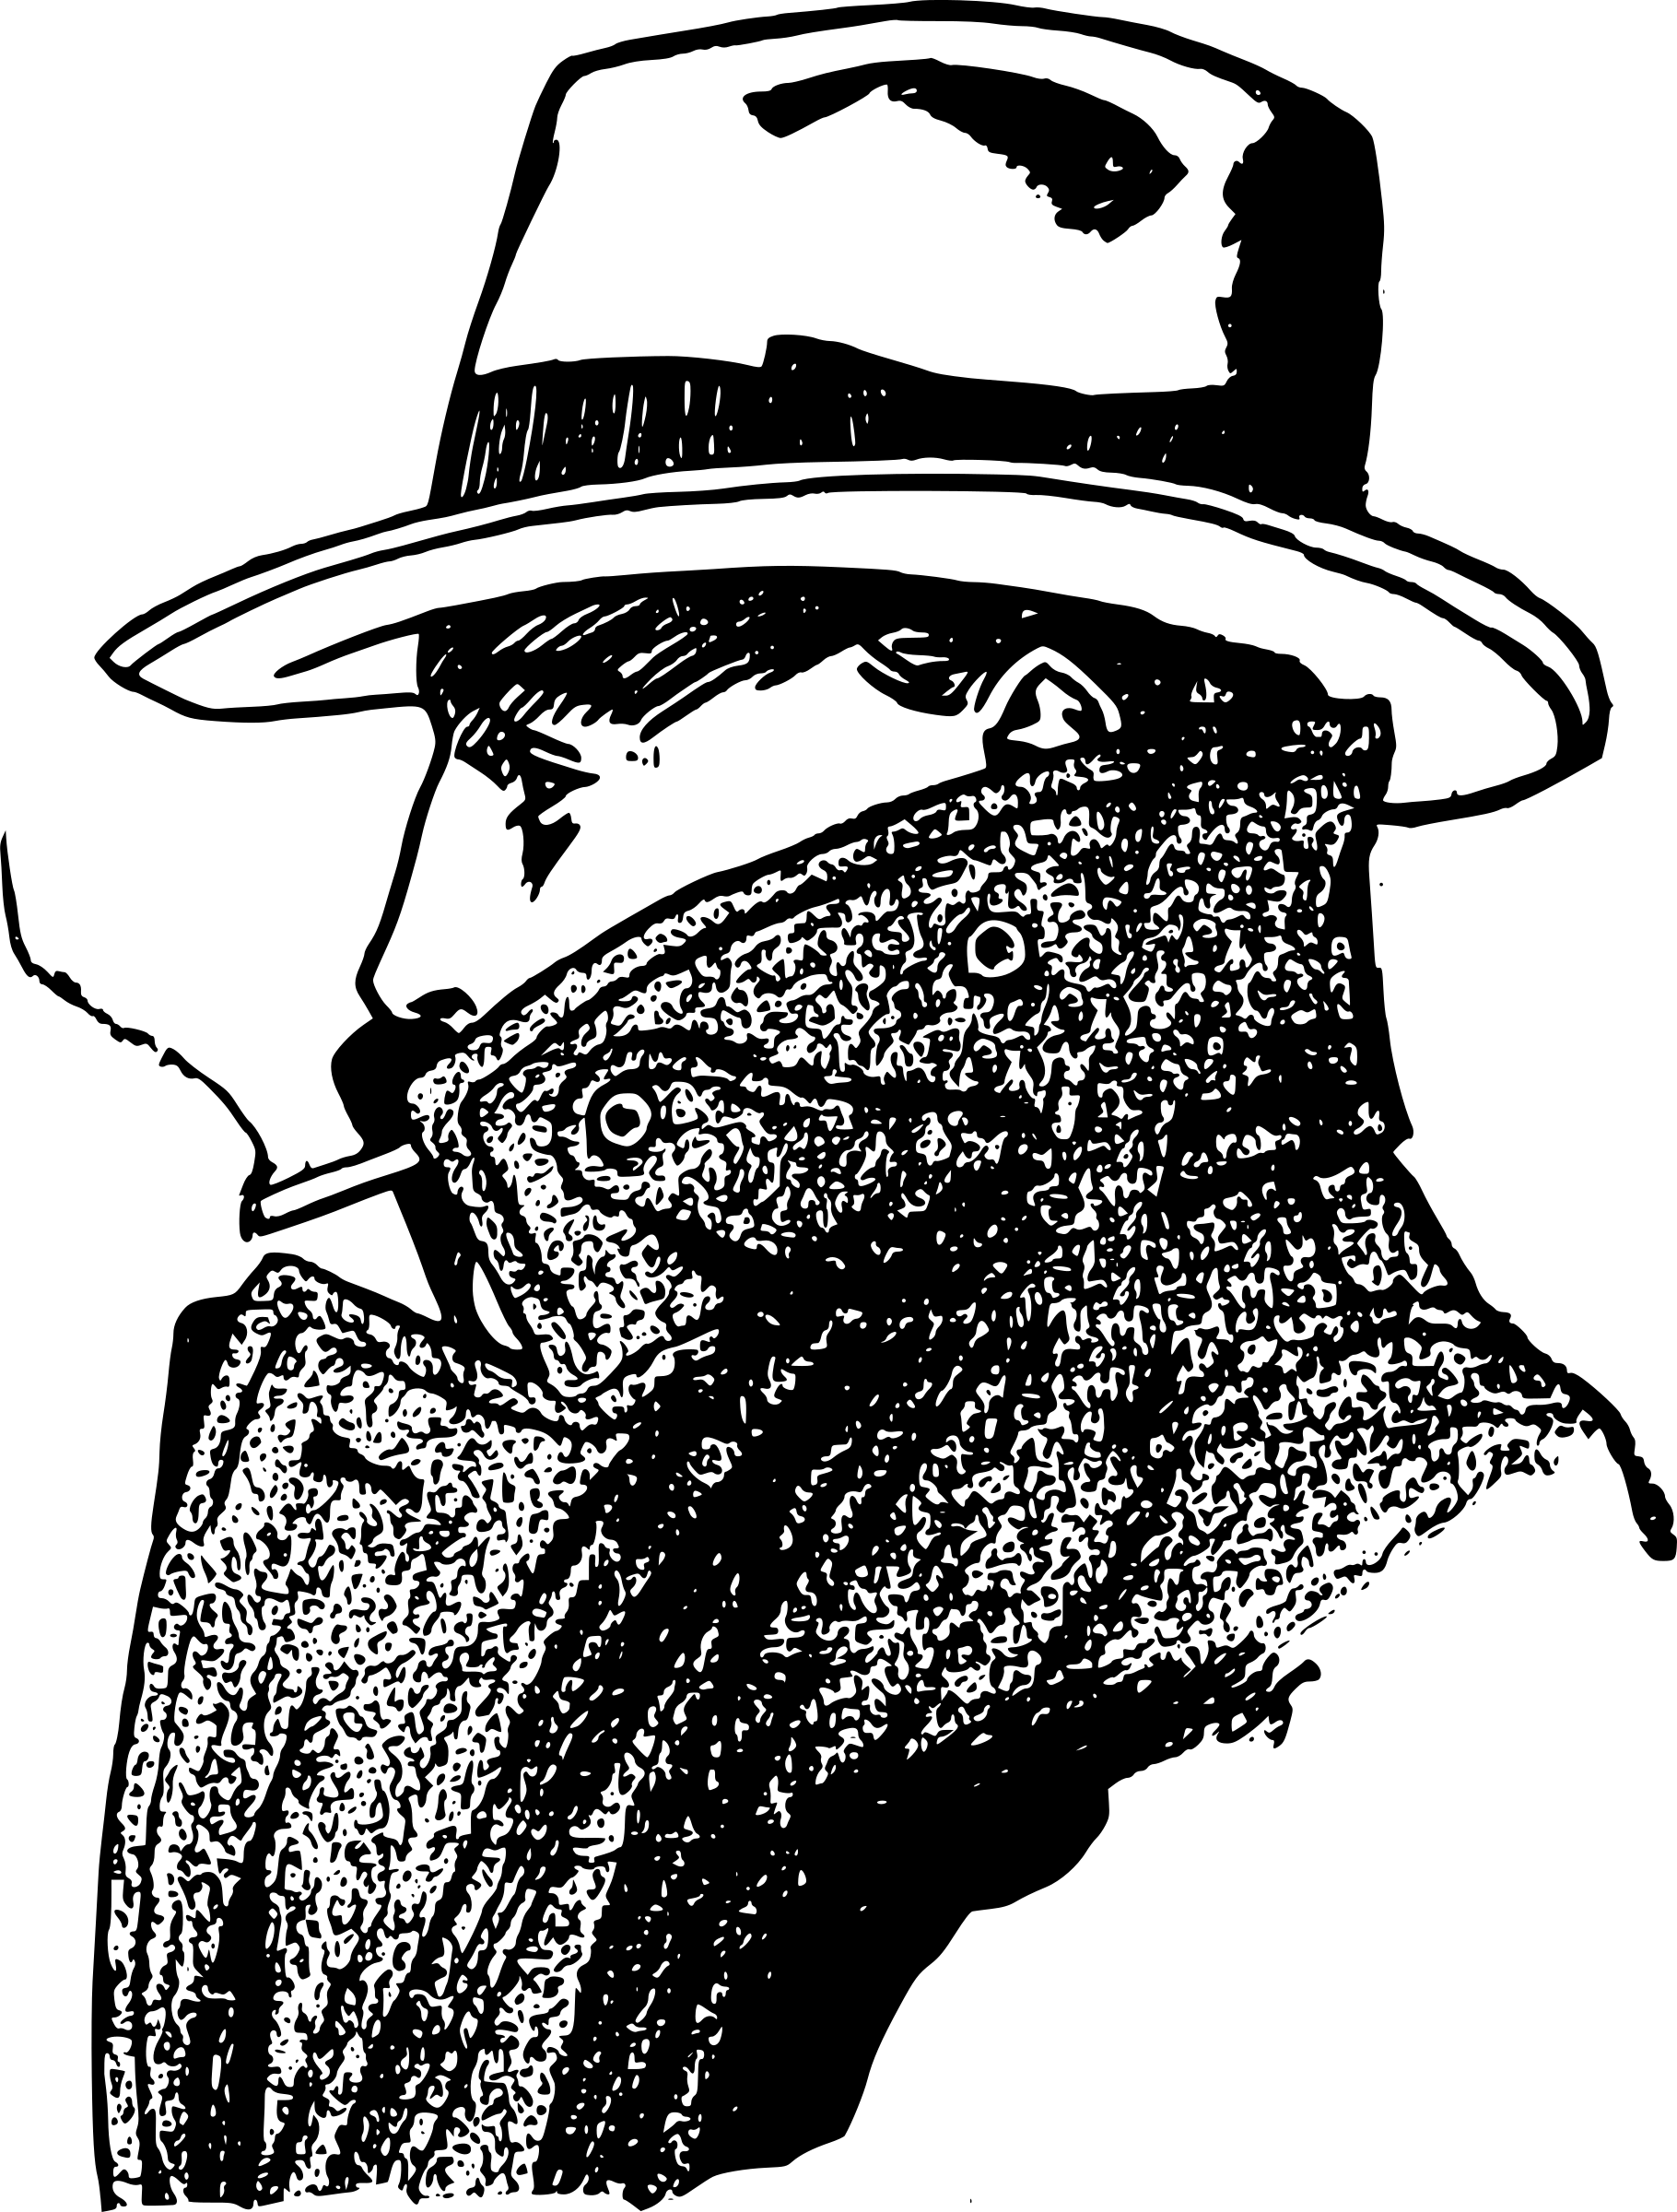 Espionage clipart png free Espionage A Legacy of Spies Clip art - Detective Silhouette png ... png free